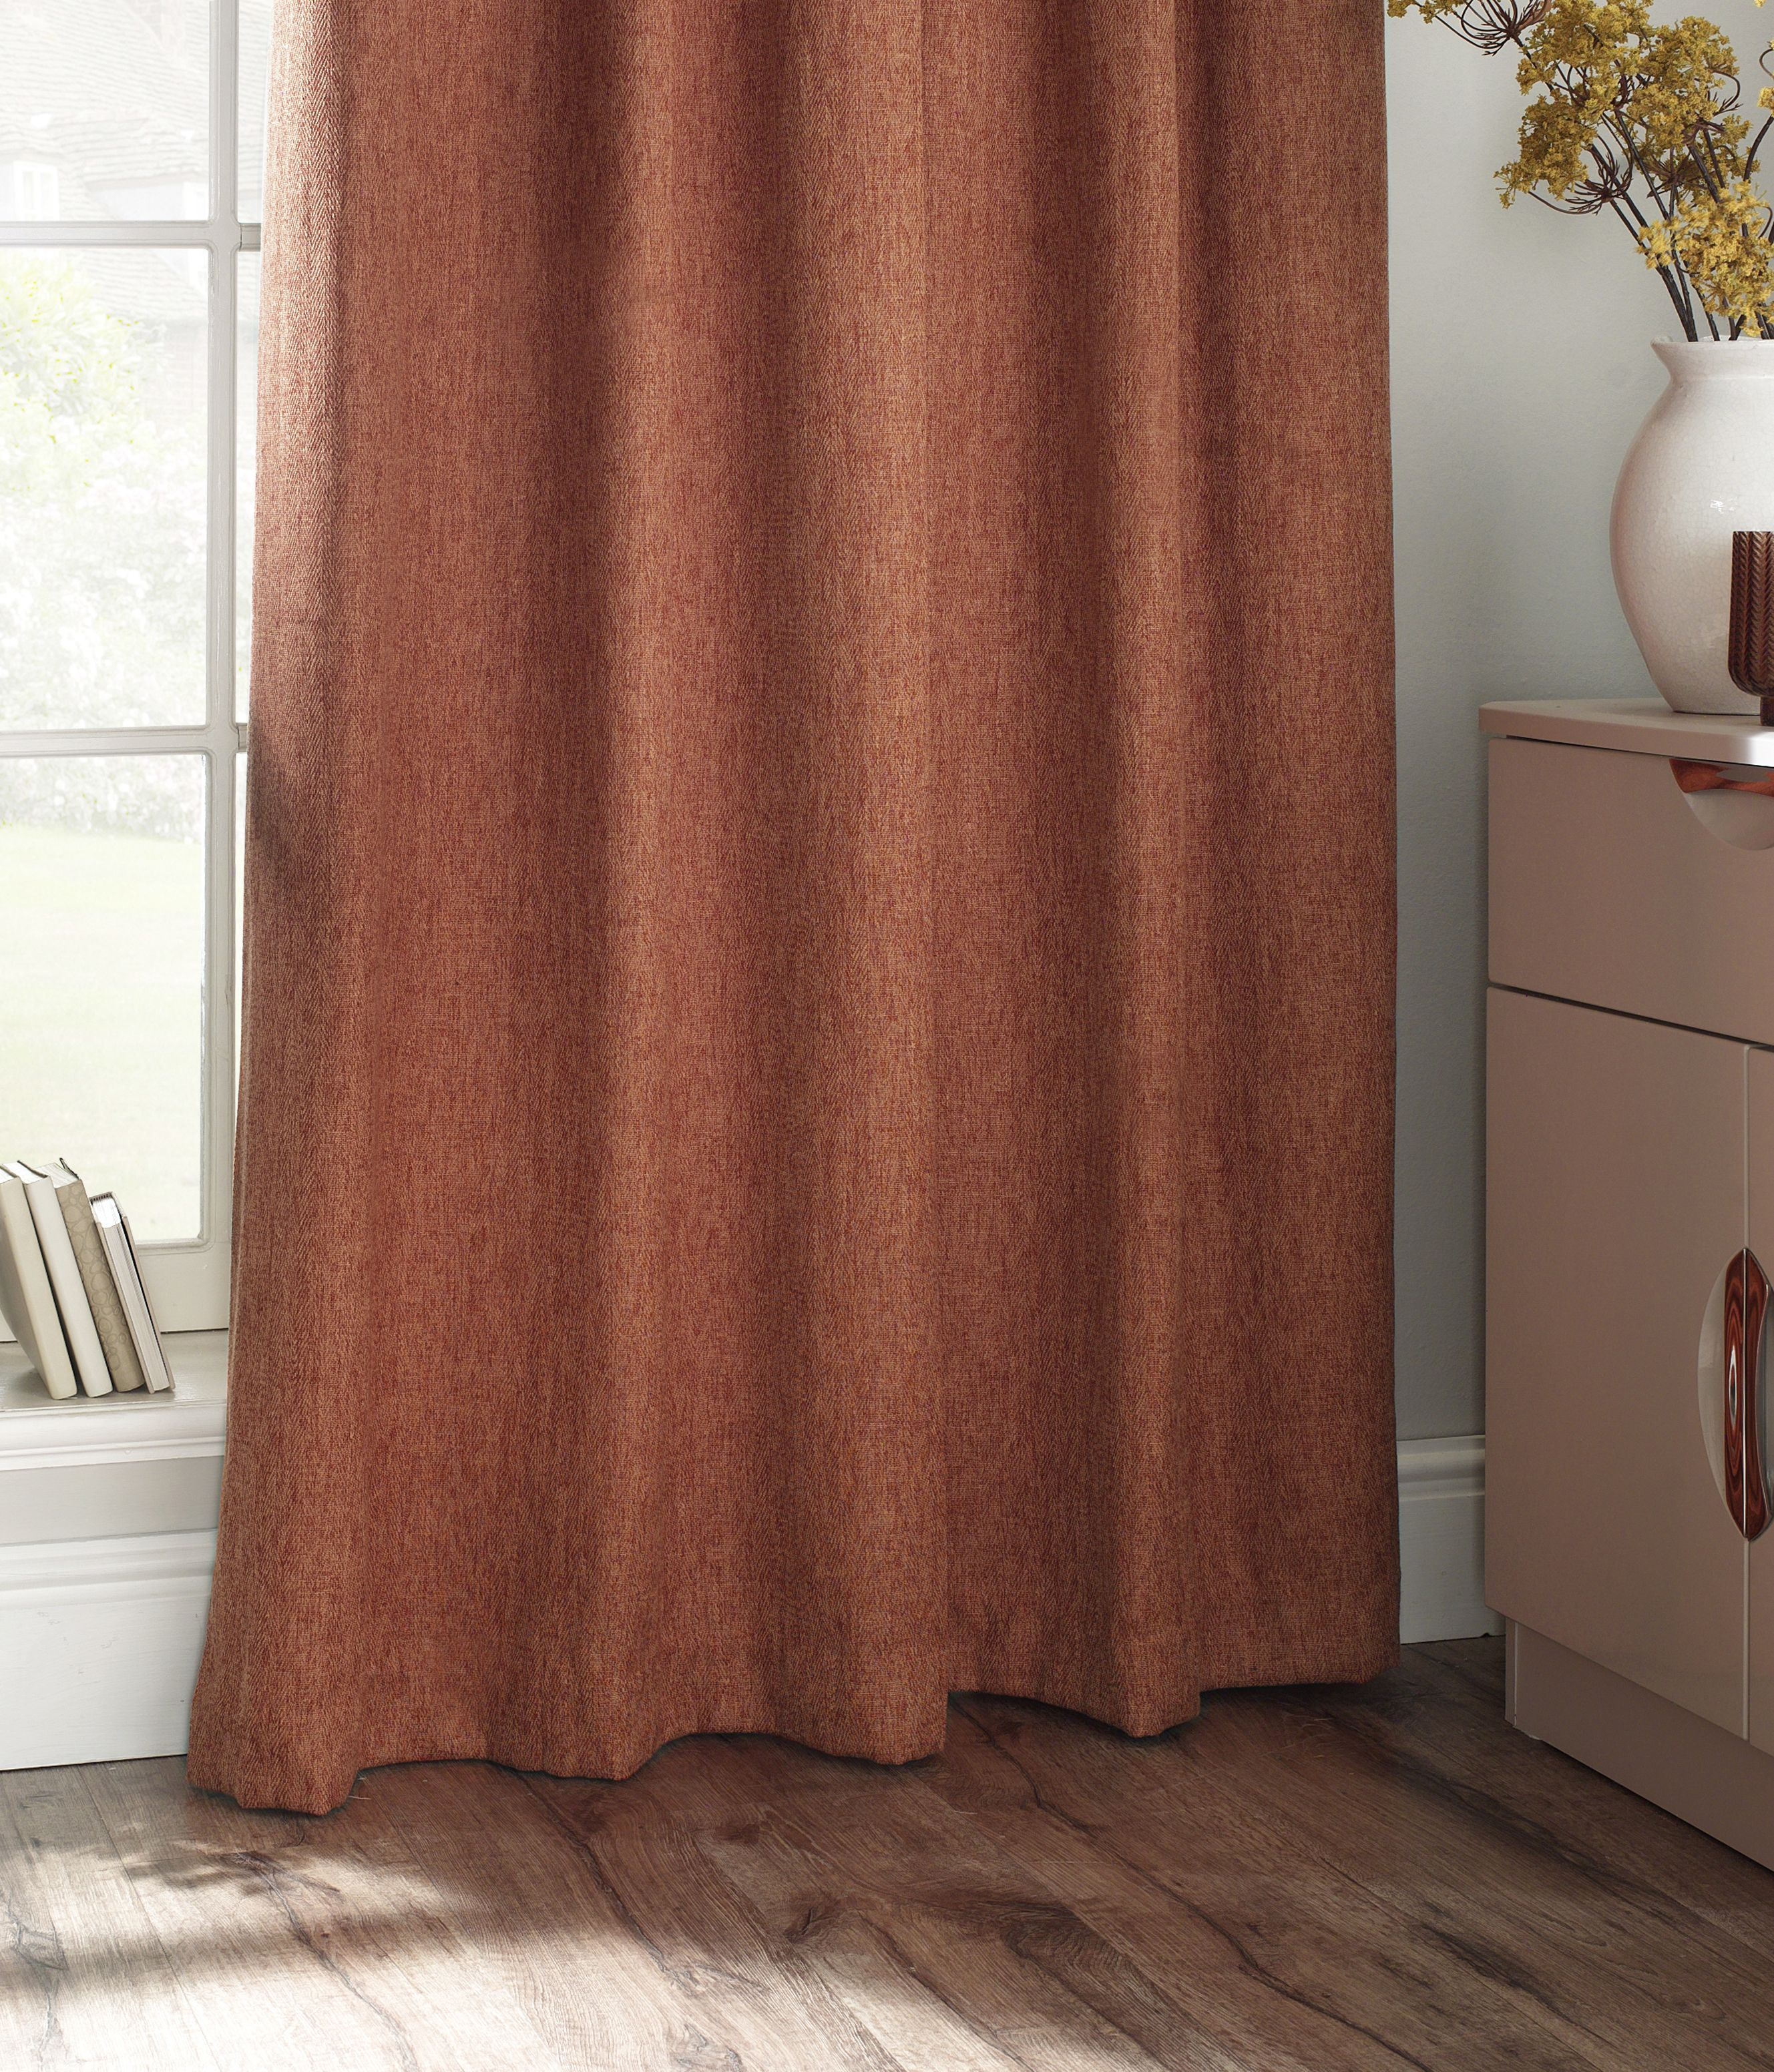 Harrison Herringbone Pencil Pleat Curtains in Burnt Orange